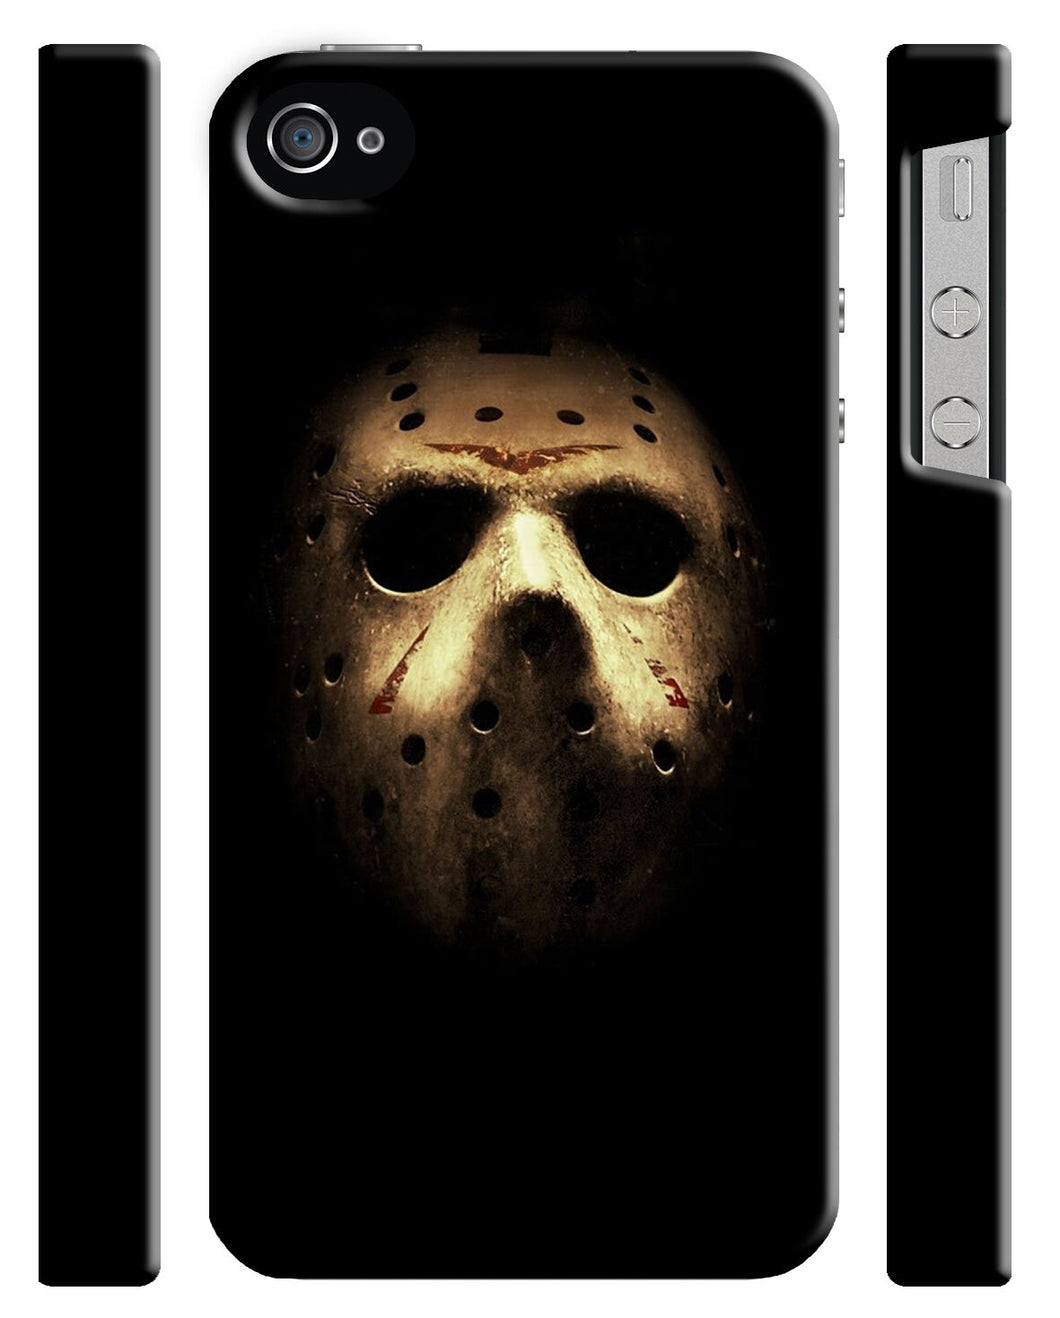 Halloween Friday The 13th Jason Iphone 4s 5 5s 5c 6 6s 7 8 X Plus Case Cover ip2